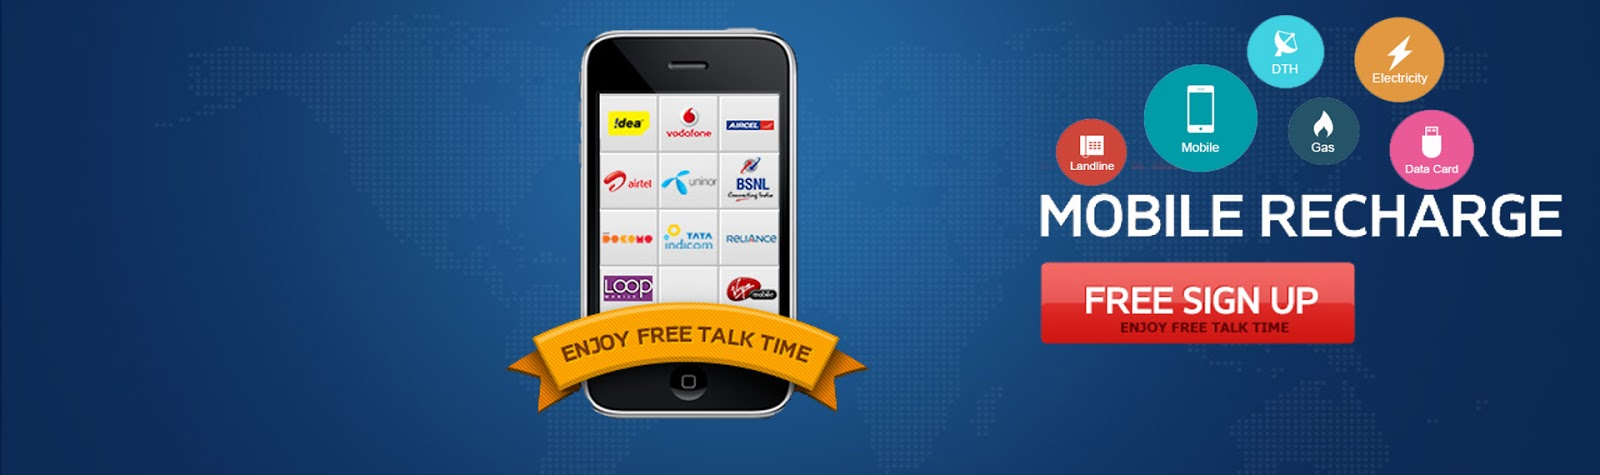 Mobile Recharge Api Bill Mitra Bill Payment Mobile Recharge And Cash